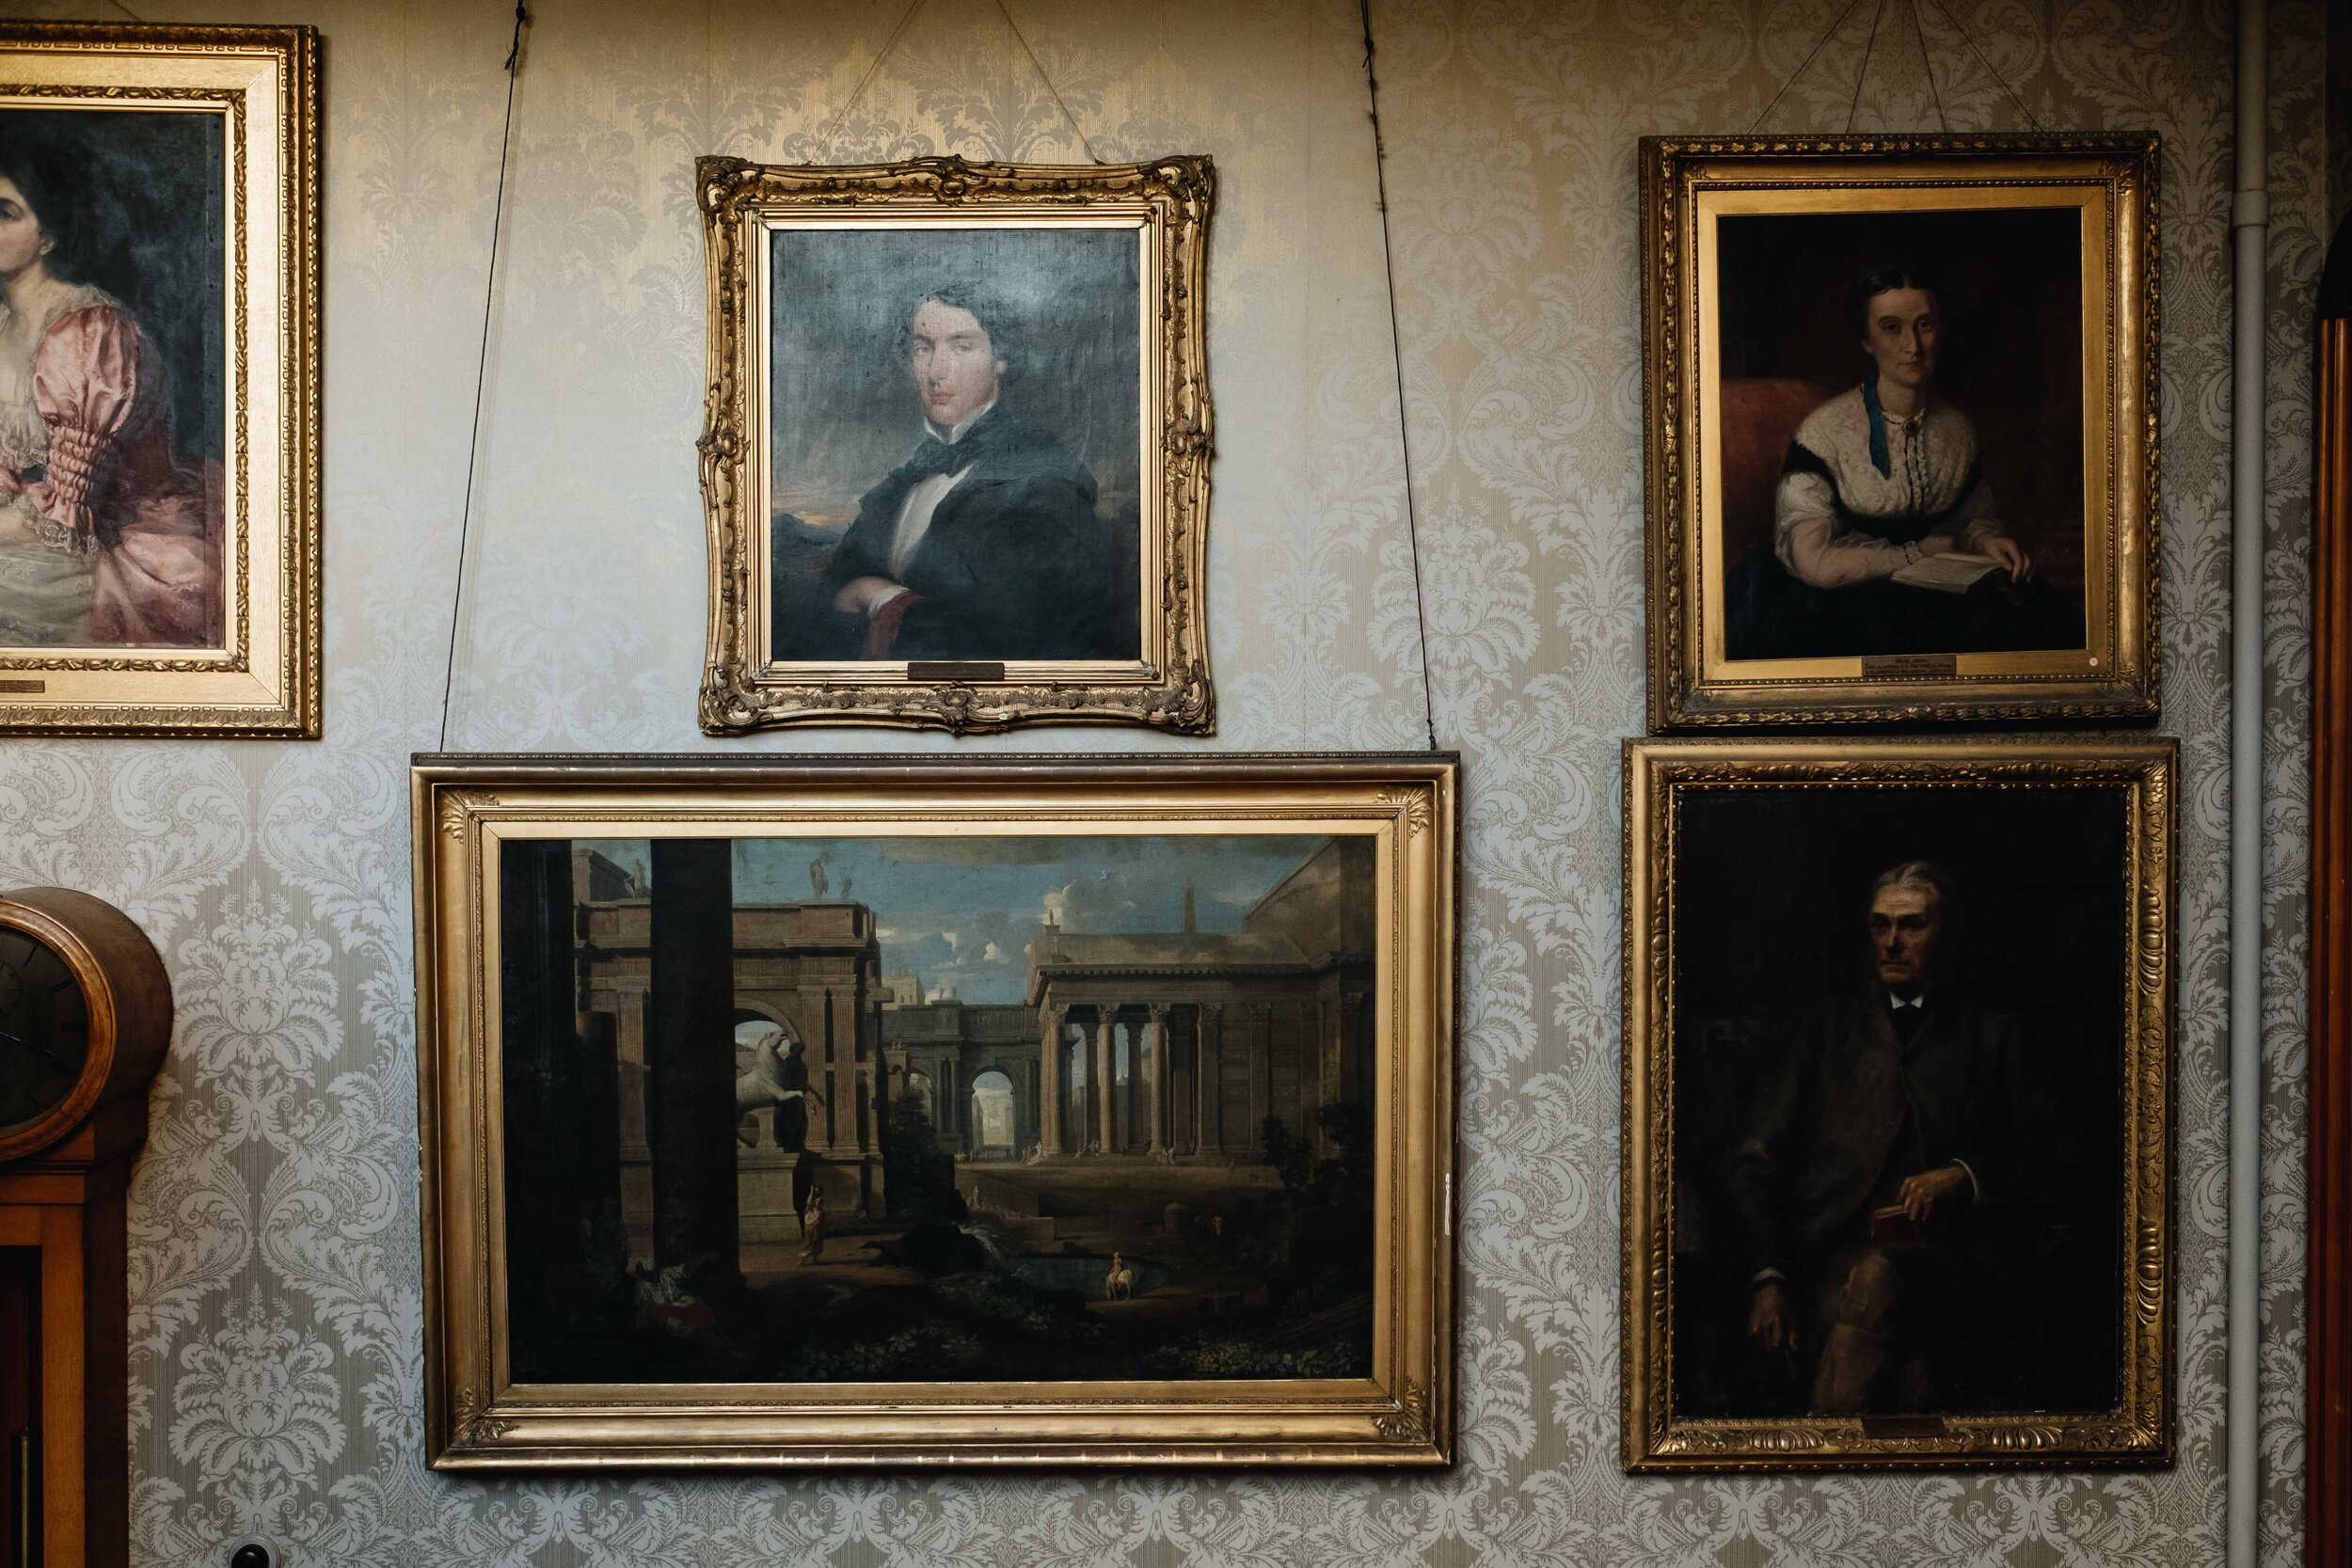 One of the hallway walls of Cambo House which has many paintings with heavy gold frames